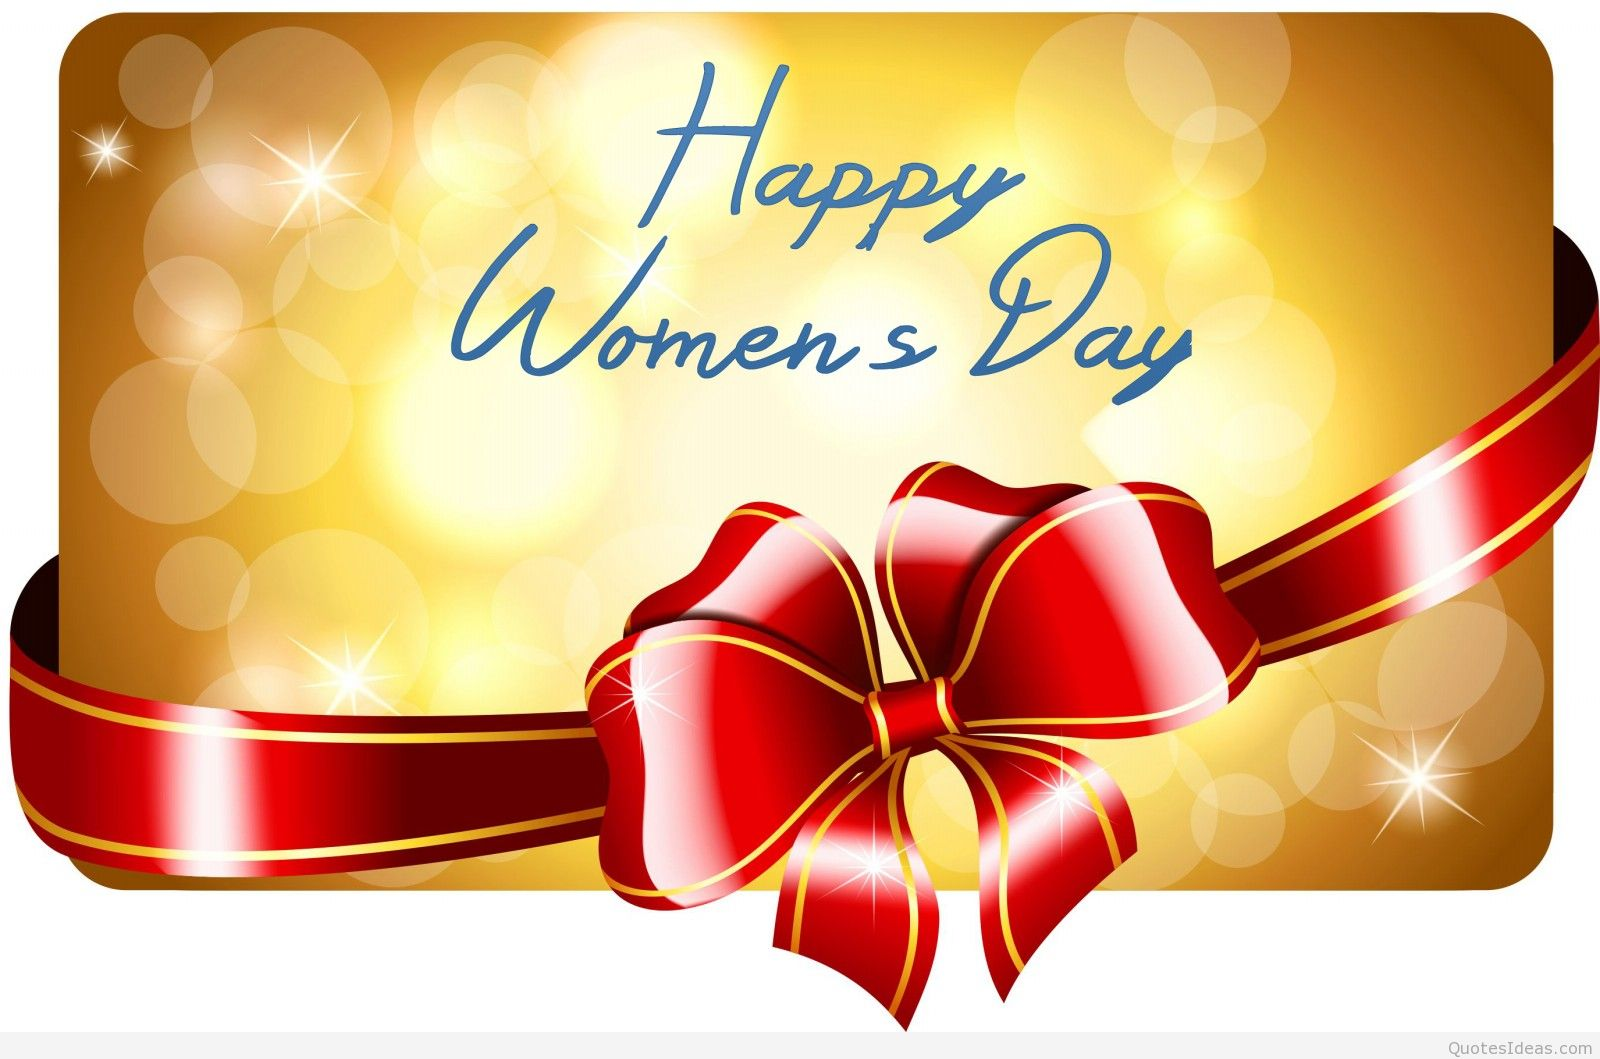 Women S Day Images For Whatsapp Dp Profile Wallpapers Free